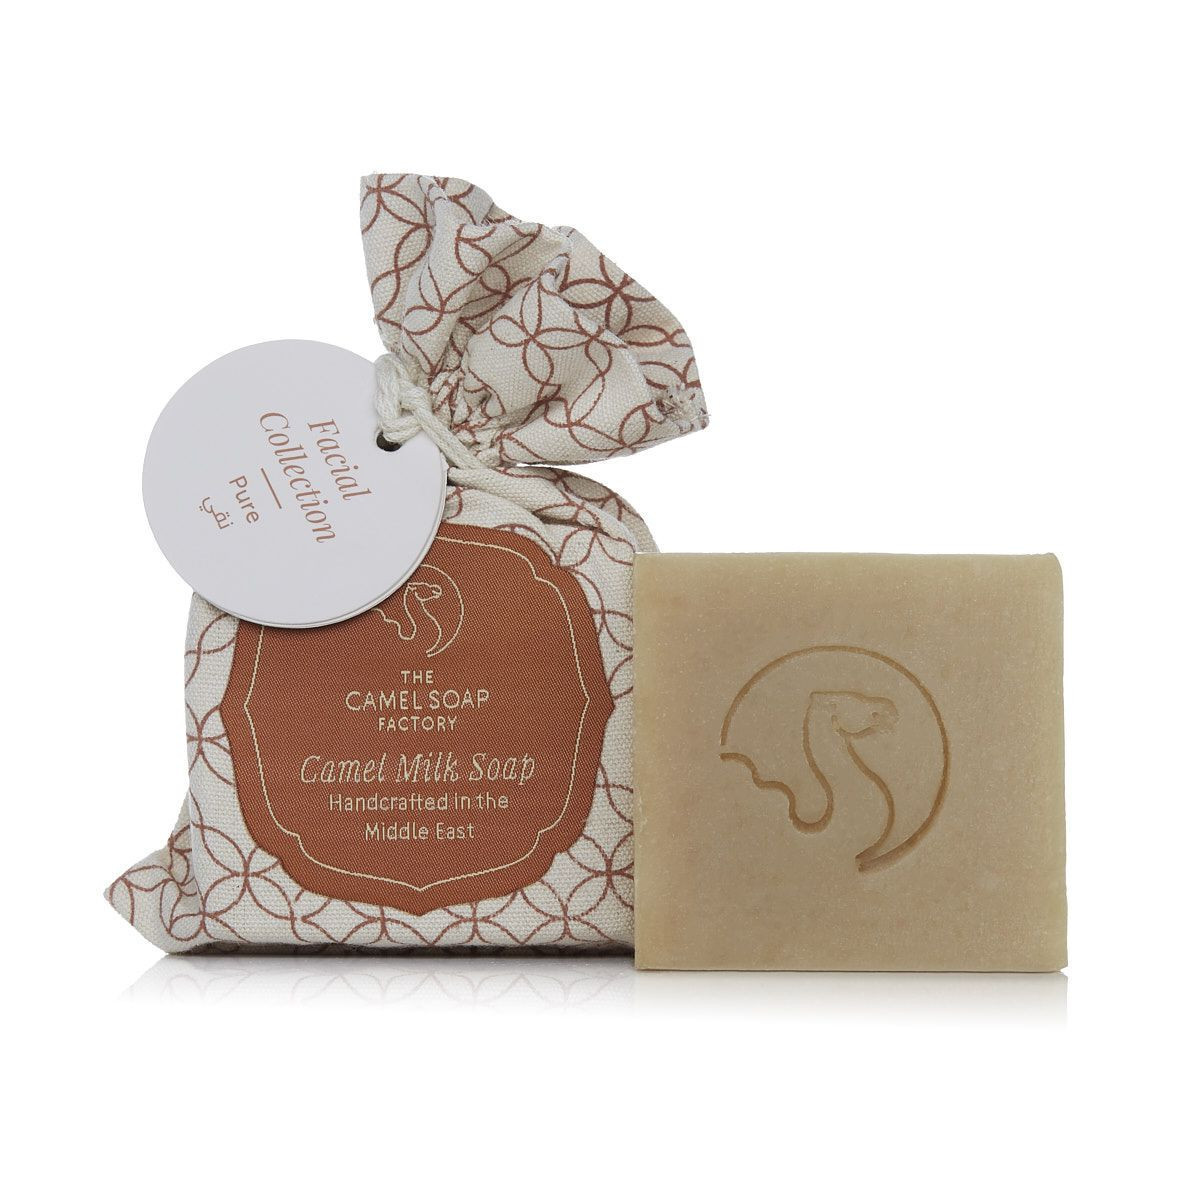 Camel milk soap Unscented - Face soap